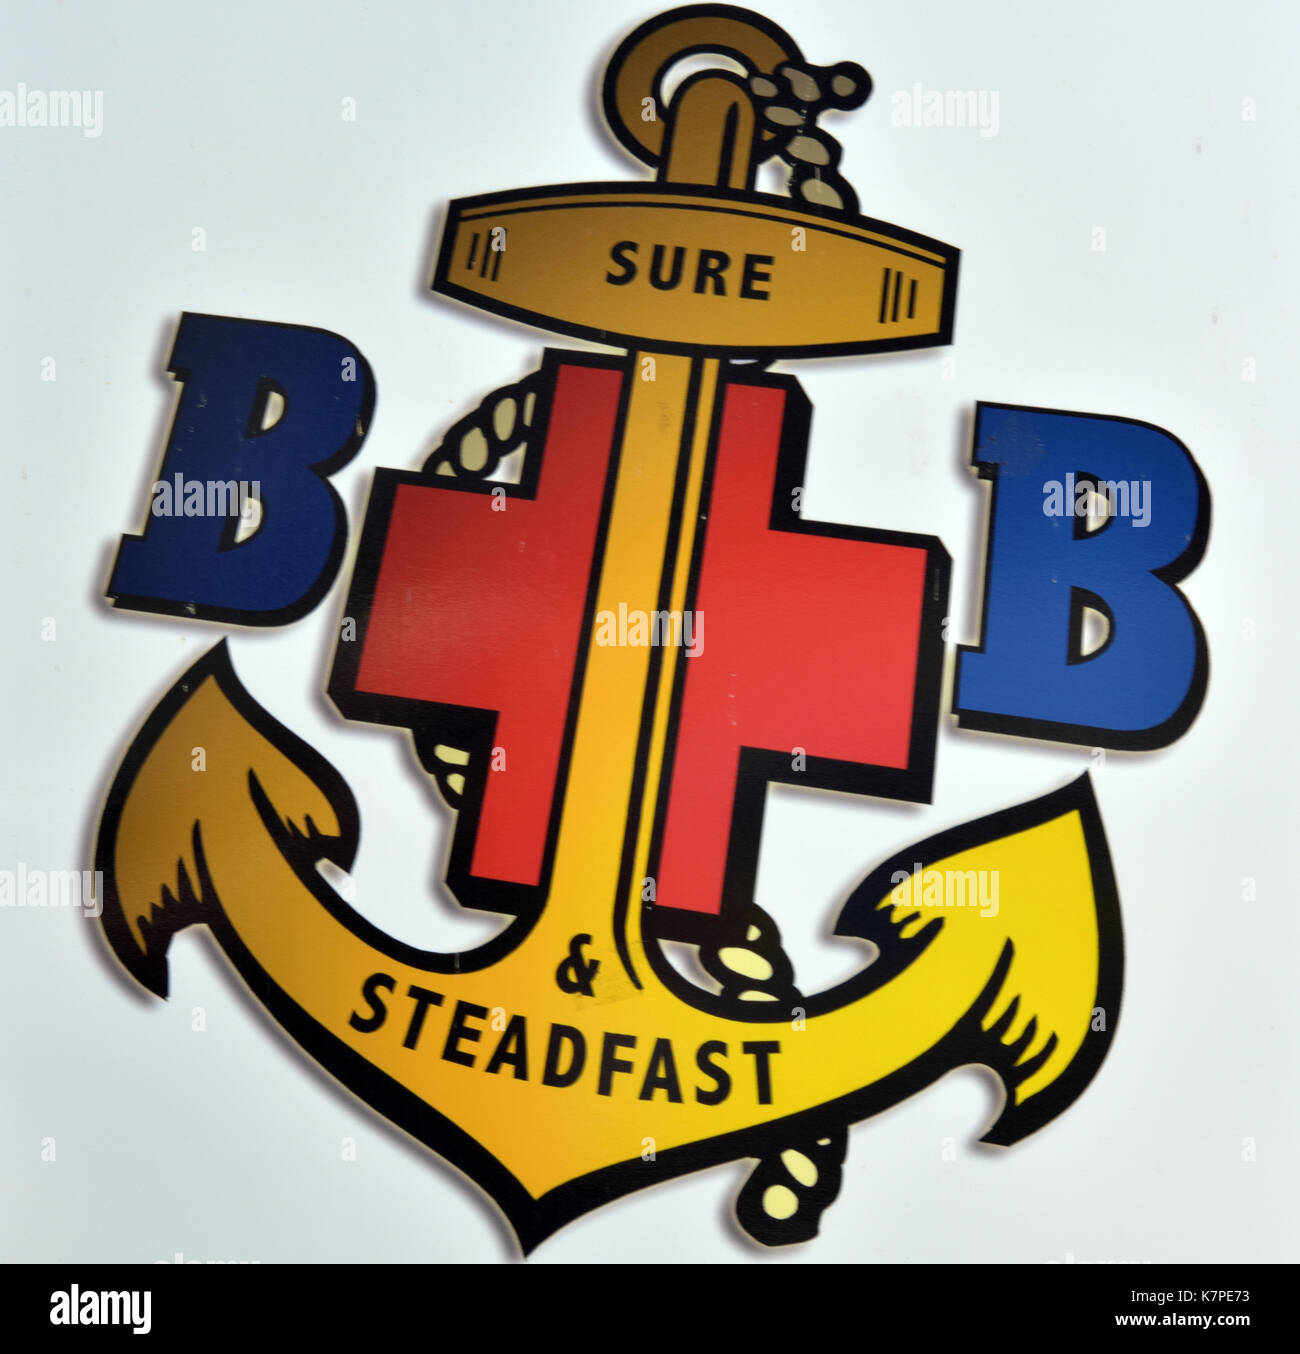 the boys brigade youth group. religious background and societies for young people and children. teaching morals and principles to youngsters - Stock Image